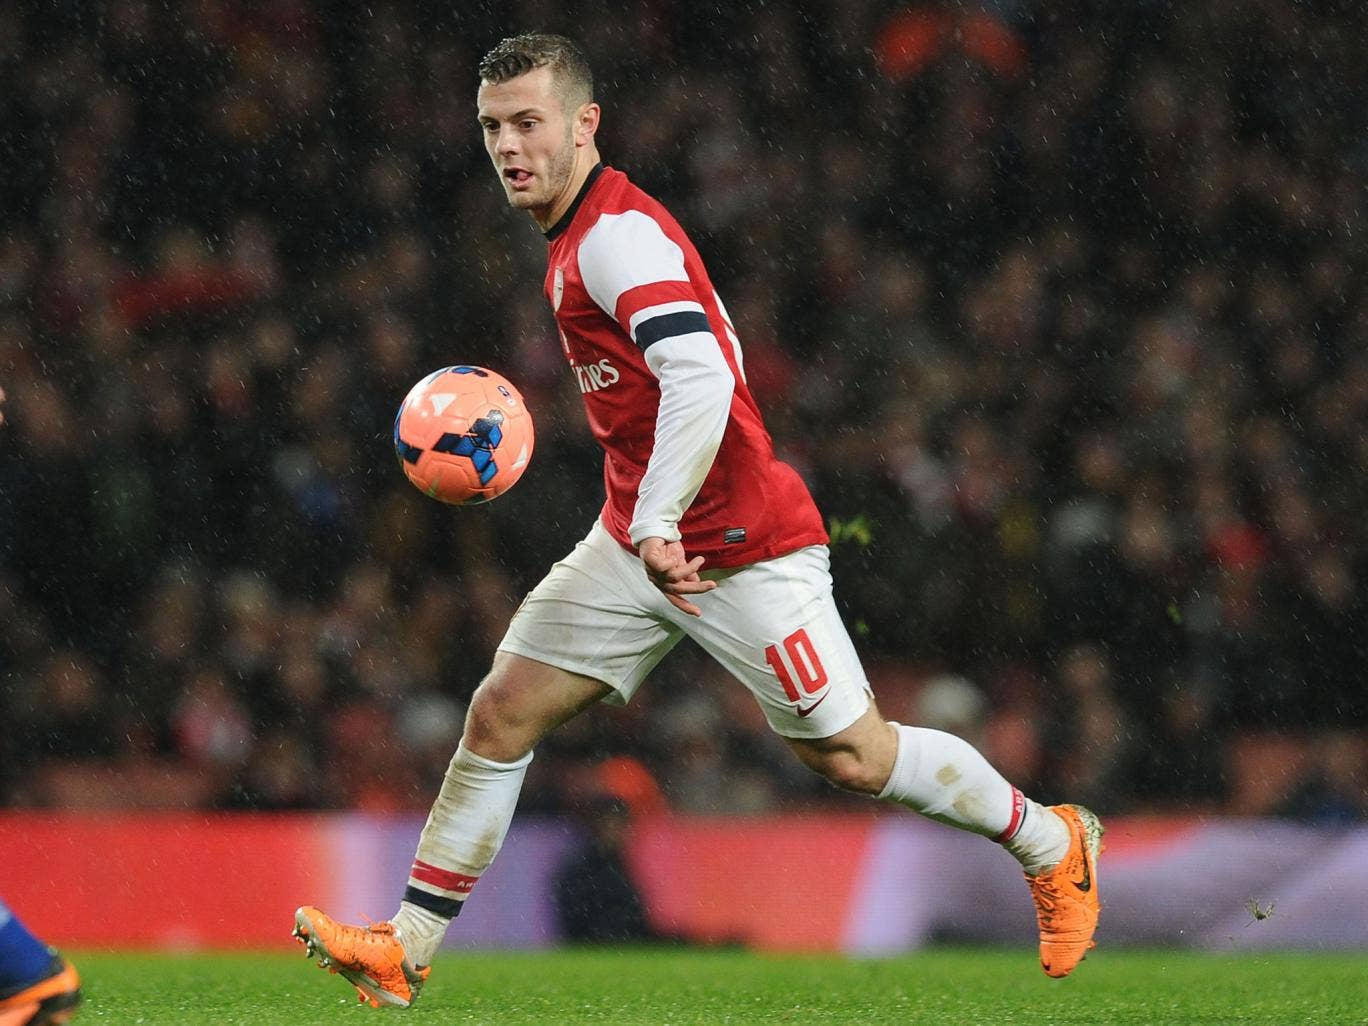 Jack Wilshere could make his return from an ankle injury in the Premier League trip to Liverpool